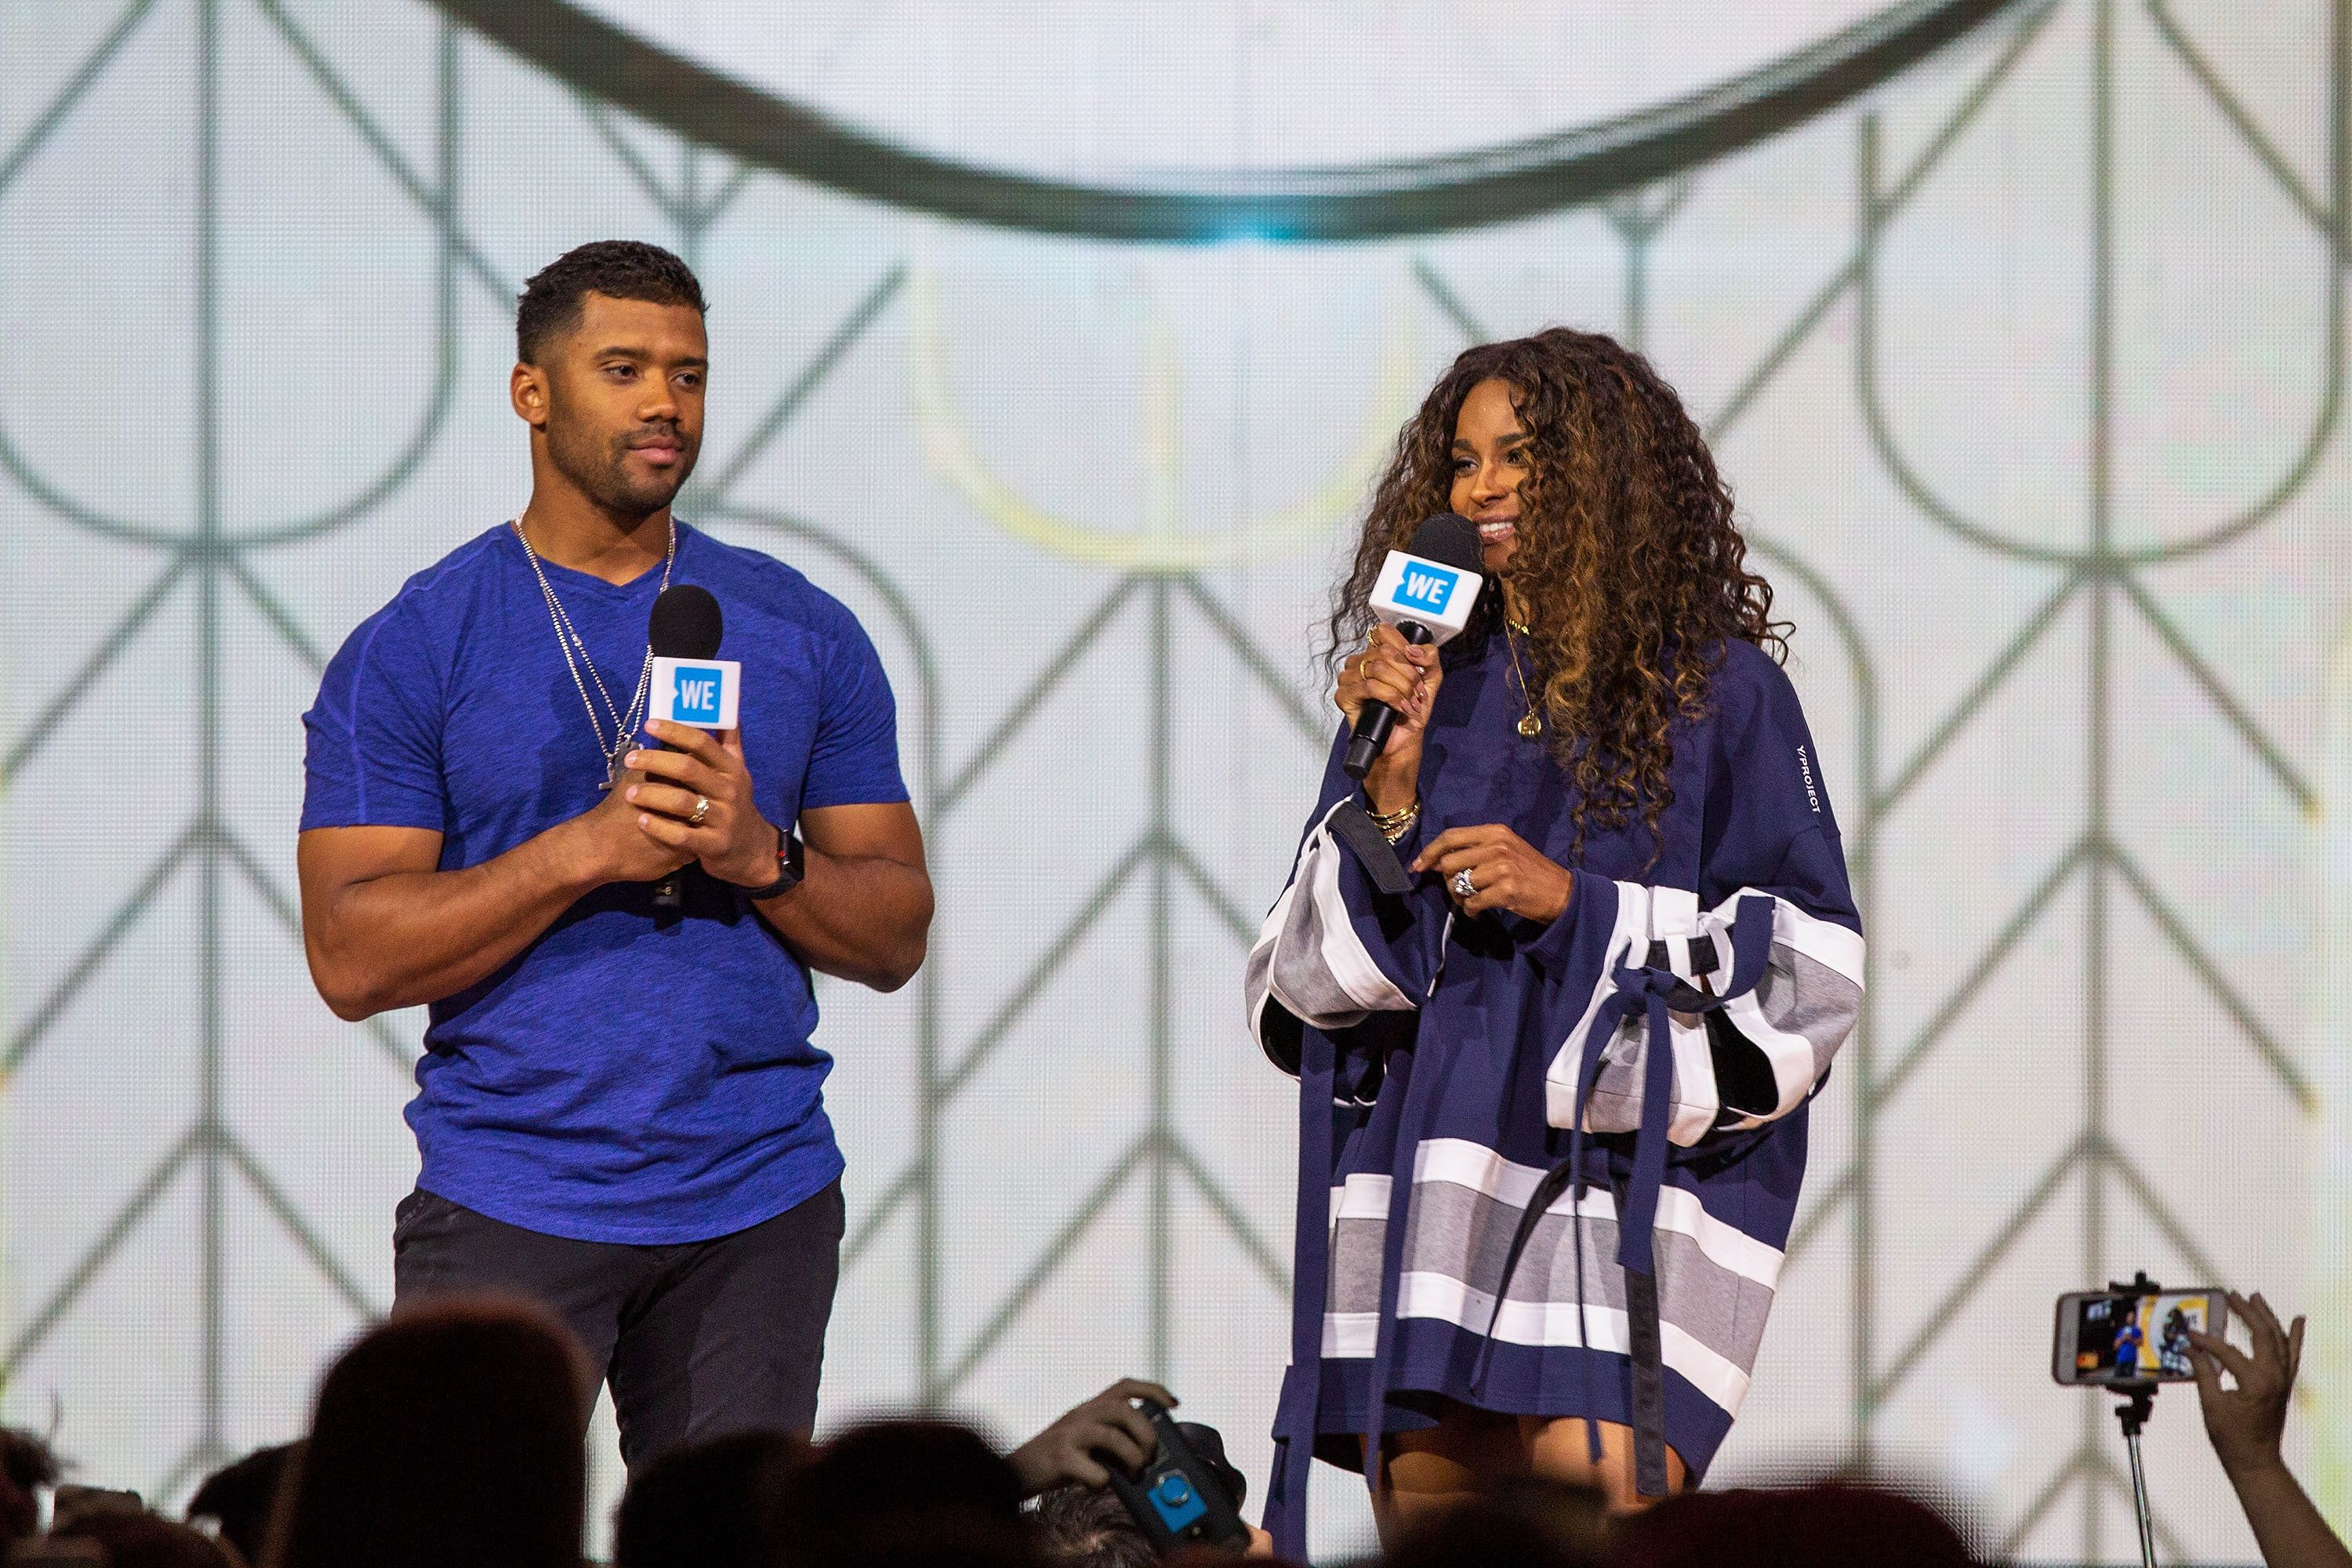 SEATTLE, WA - MAY 03:  Seattle Seahawks quarterback Russell Wilson and singer Ciara speak at WE Day at Key Arena on May 3, 2018 in Seattle, Washington.  (Photo by Suzi Pratt/WireImage)